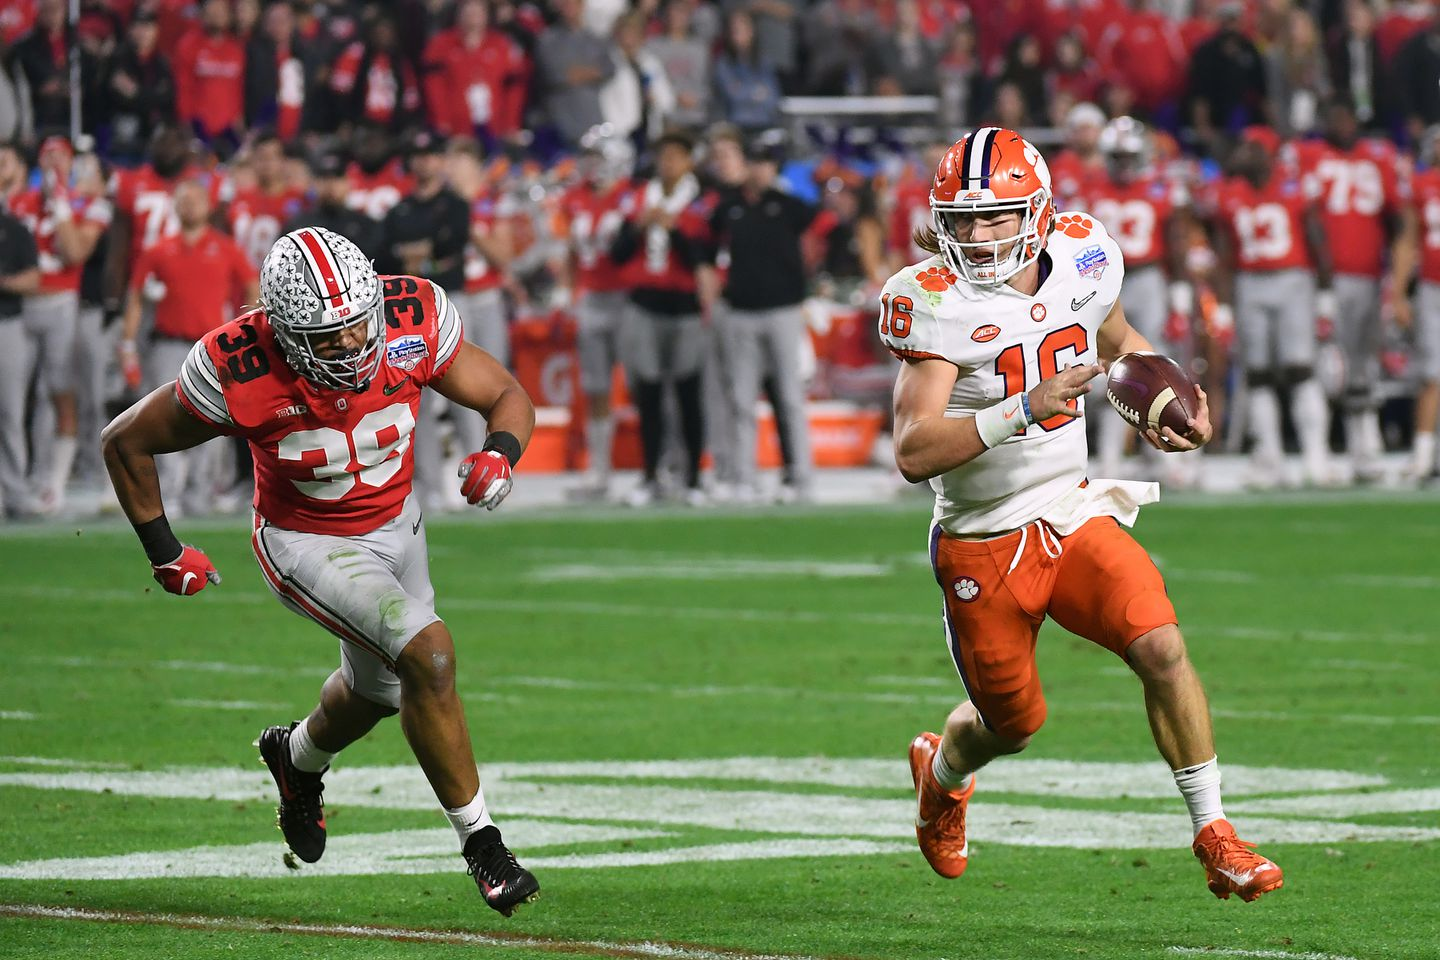 Clemson Beats Ohio State to Advance to Title Game